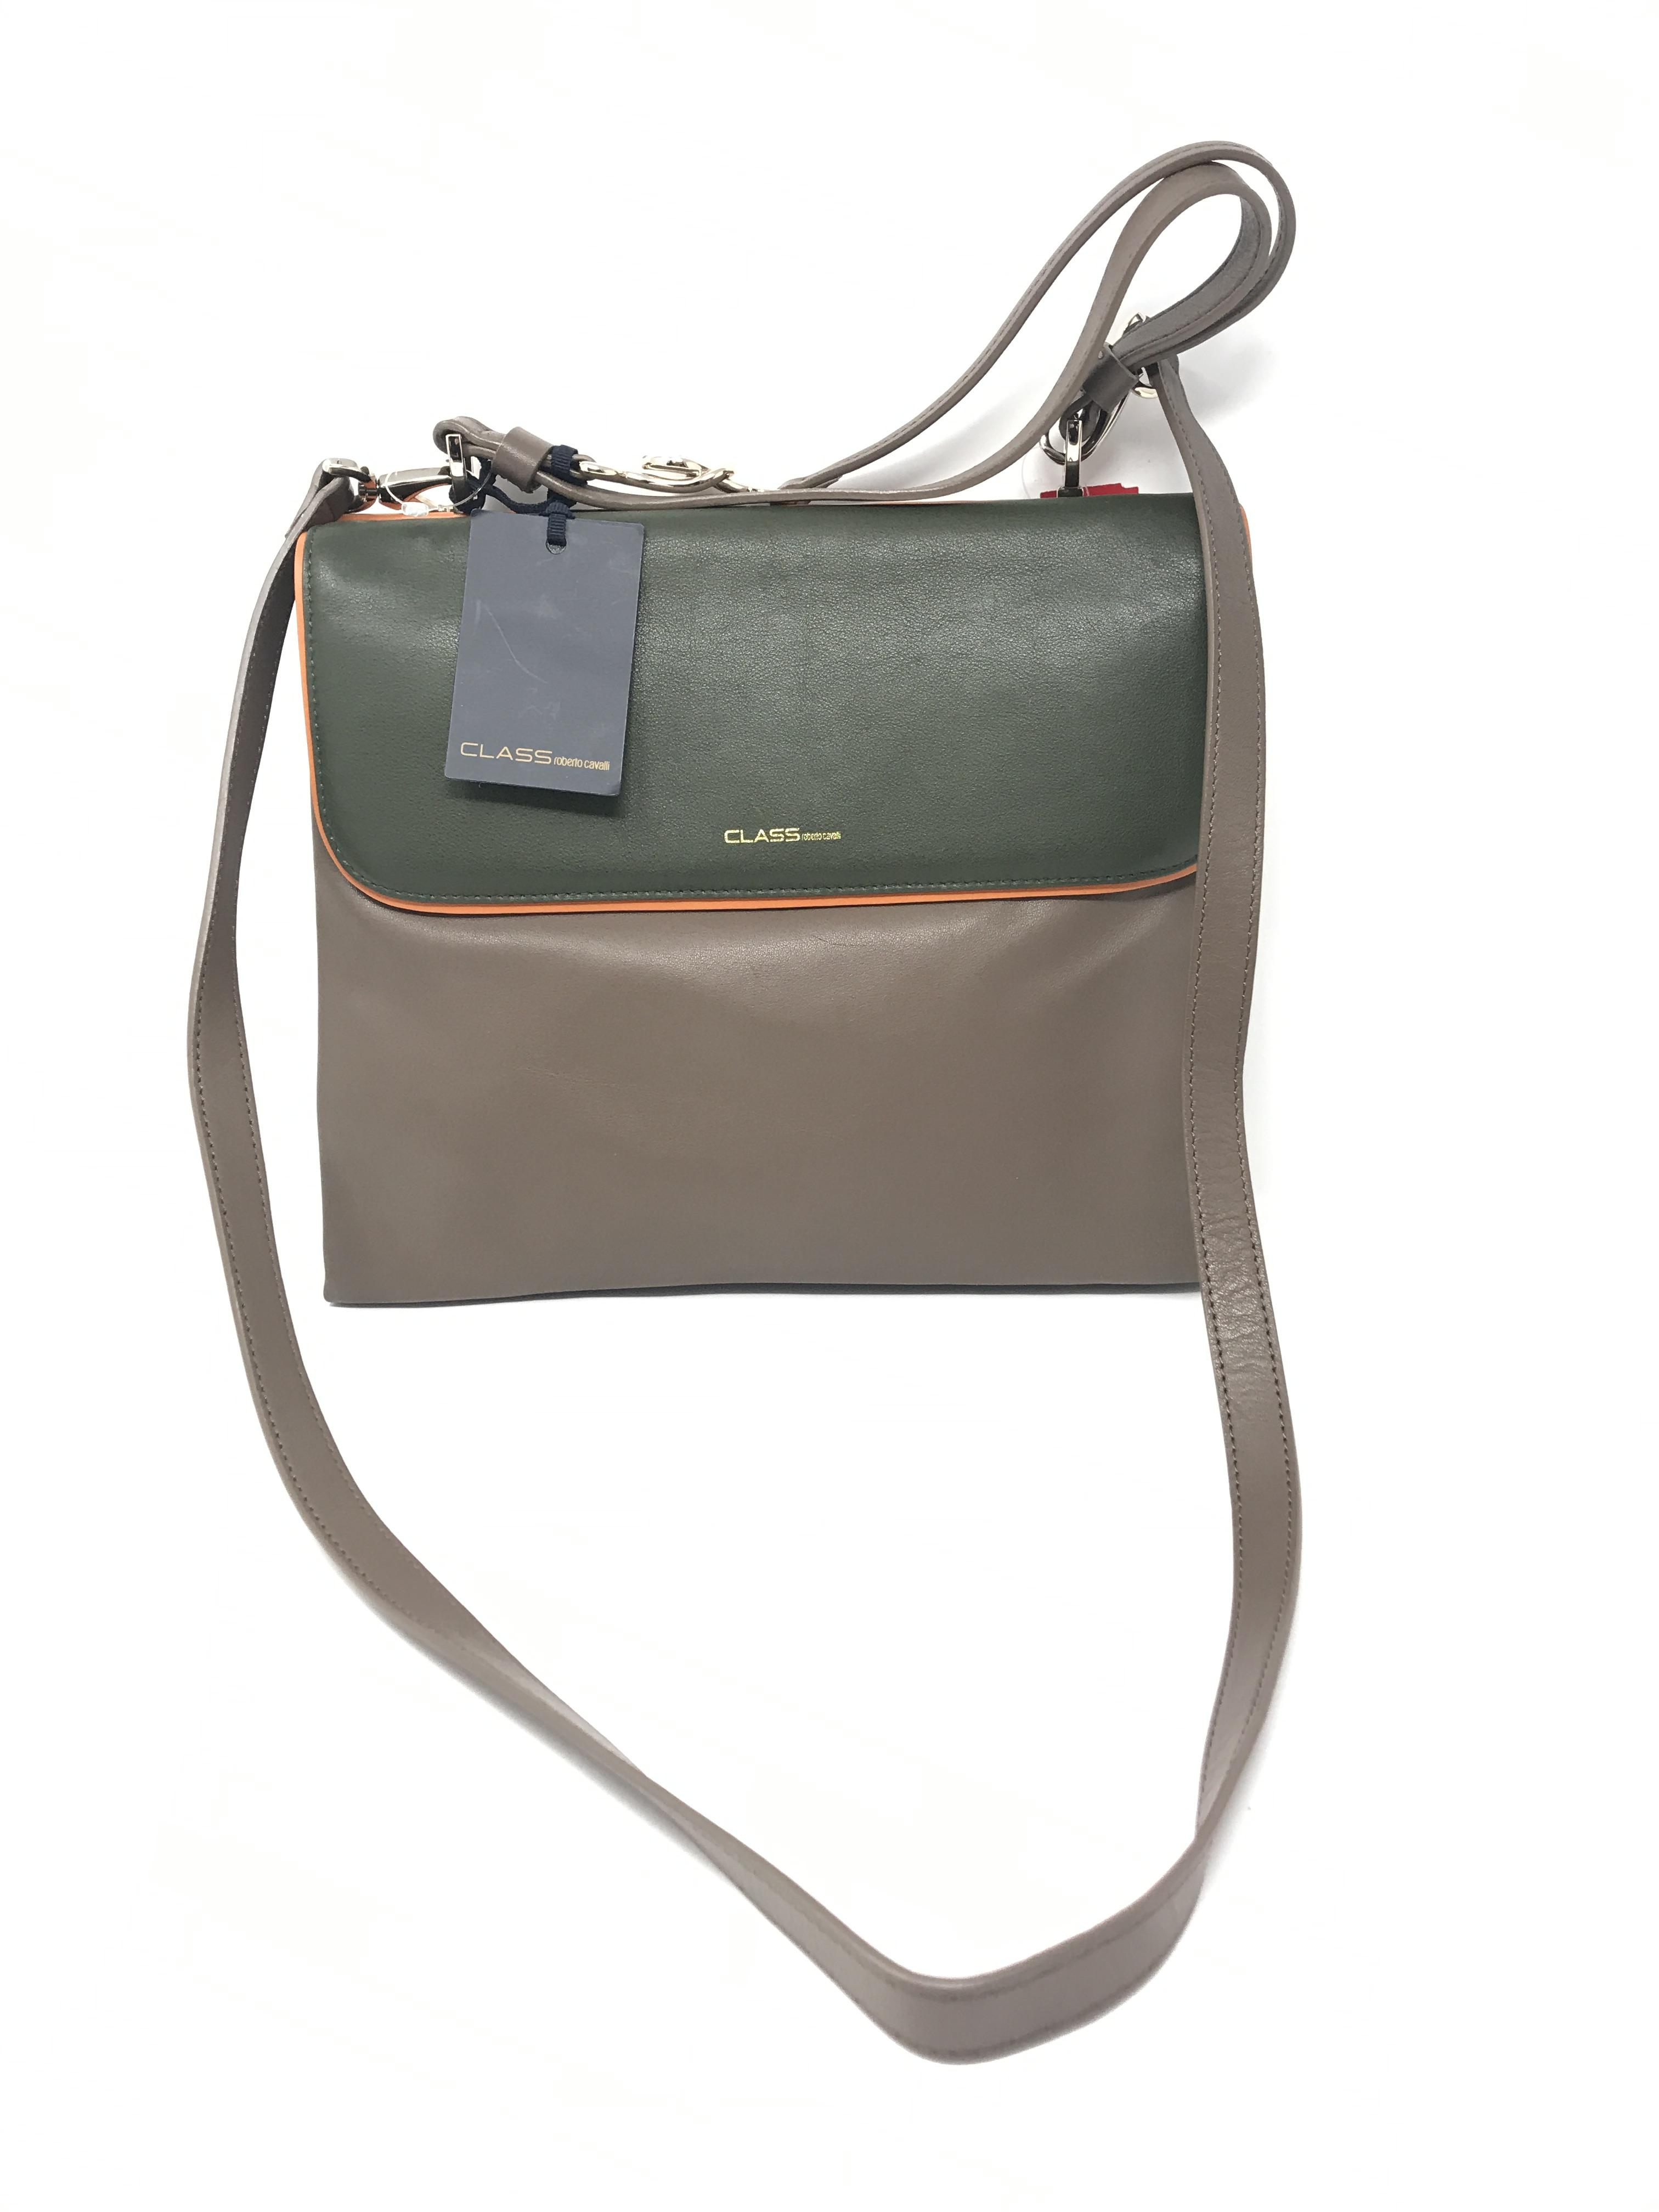 Roberto Purses, Handbags Price: $296.99